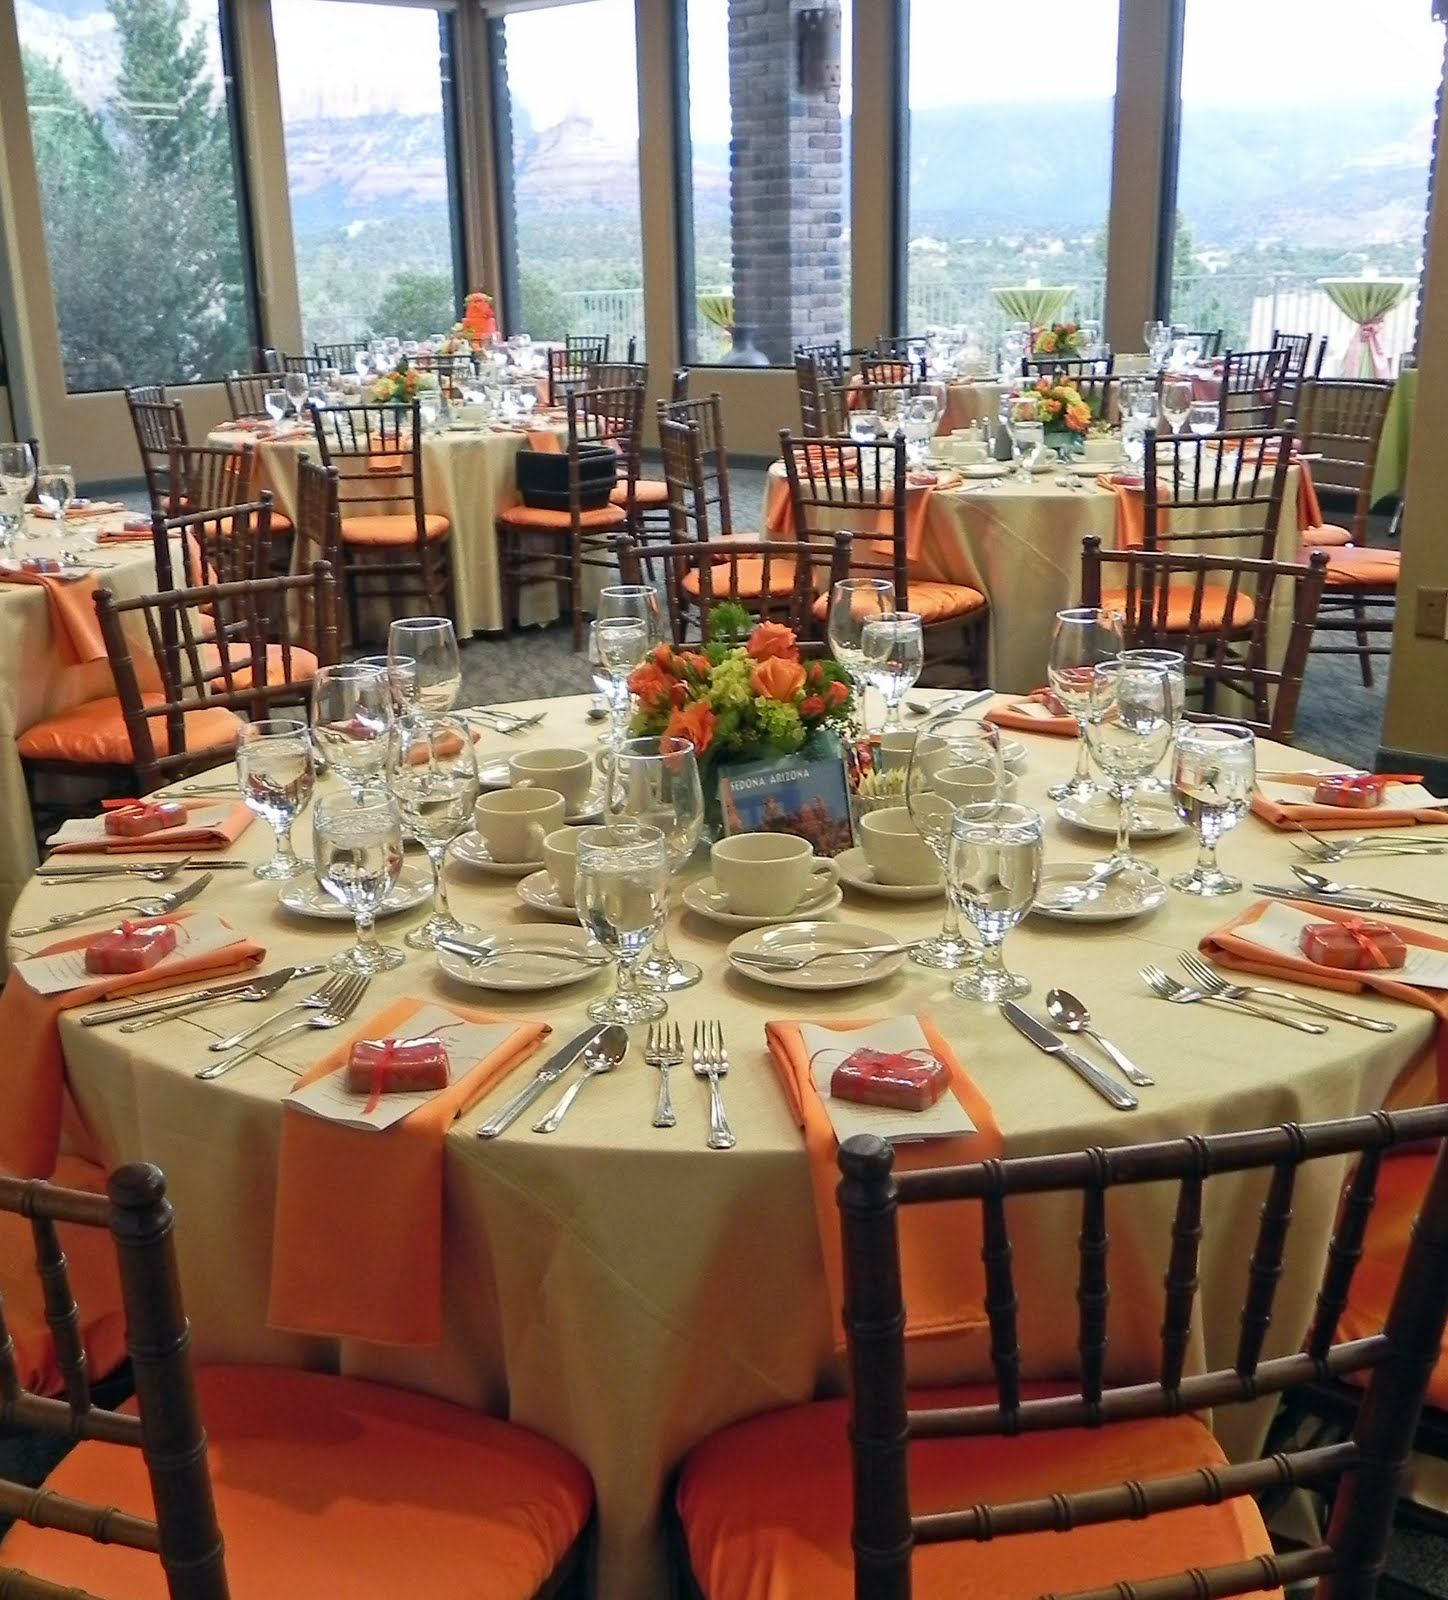 Rehearsal Dinner: Rehearsal Dinner Idea! And Corley Loves Orange, Hehe